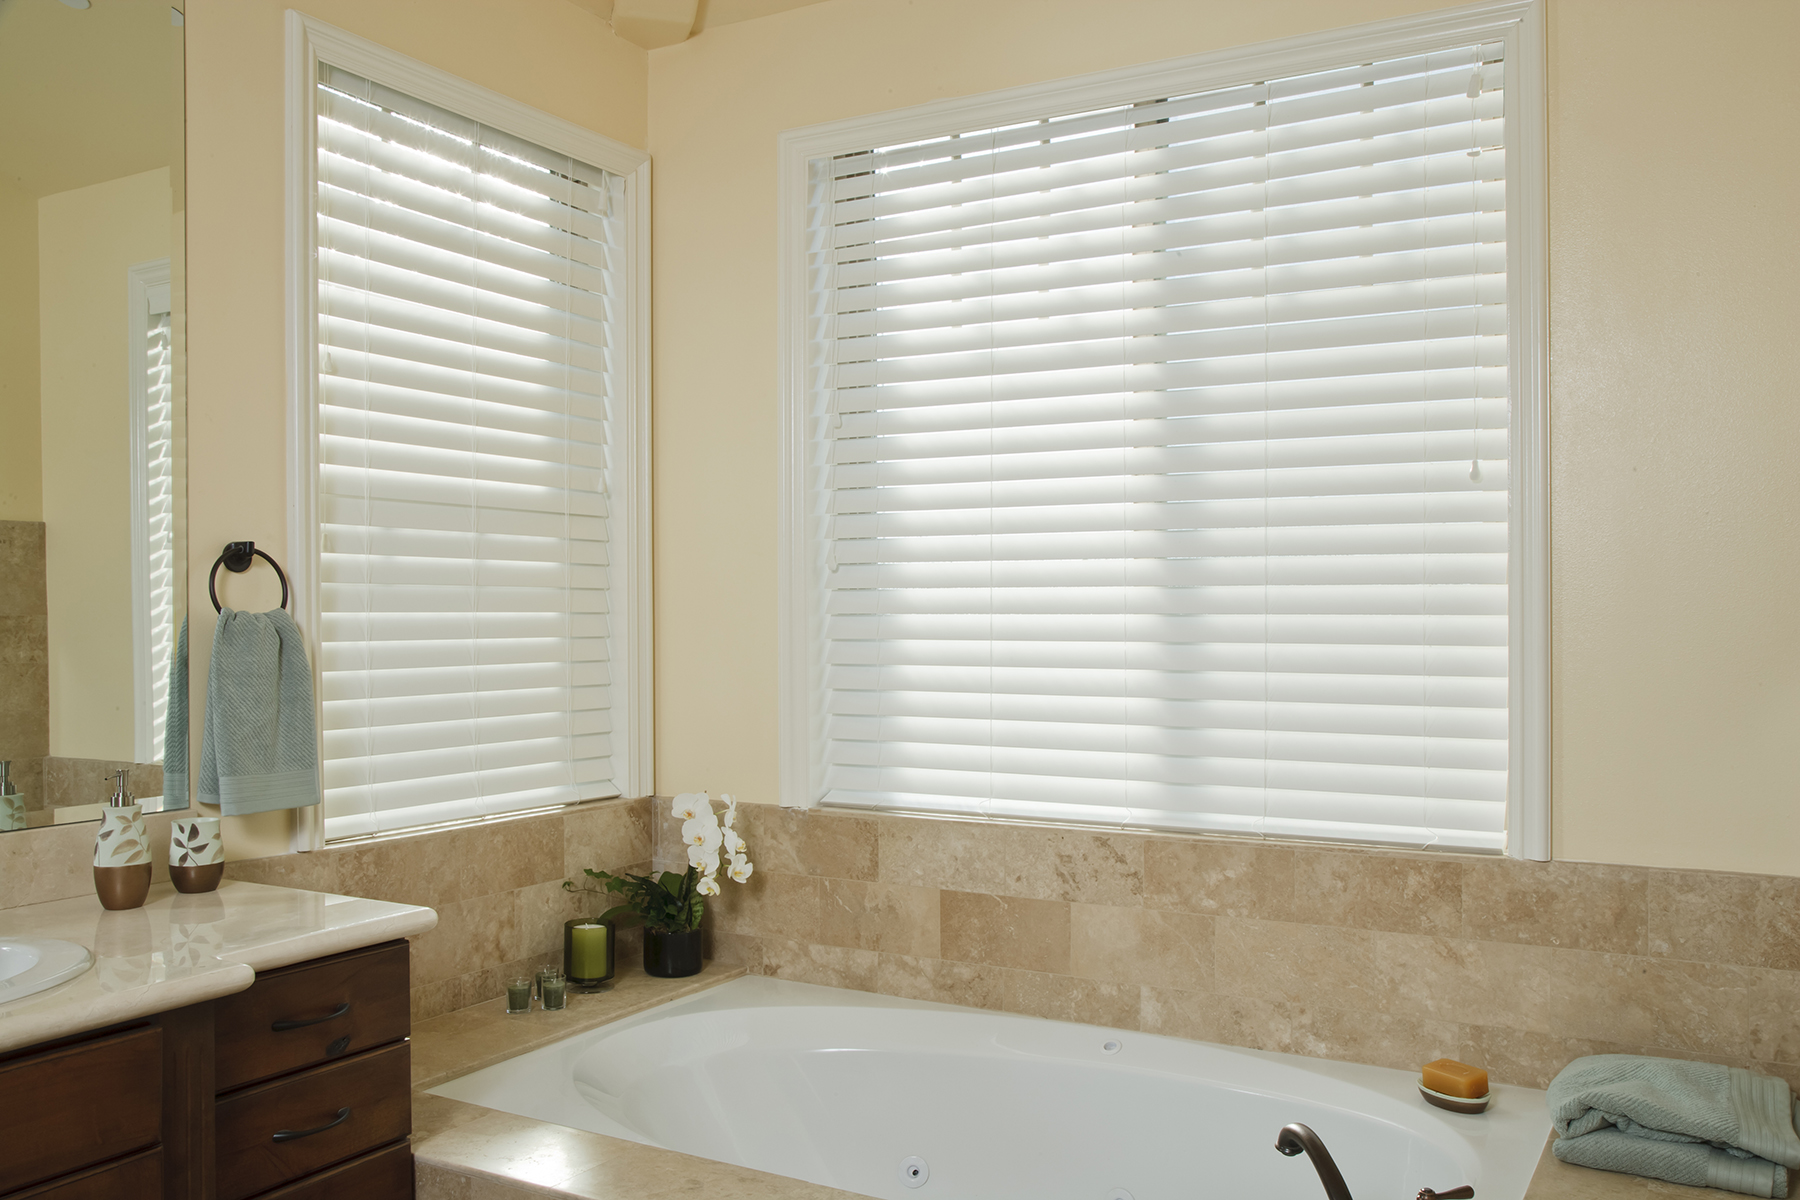 in blinds made grabersheerverticalblinds utah let sheer window the fabrics trends budget covering outside more shade